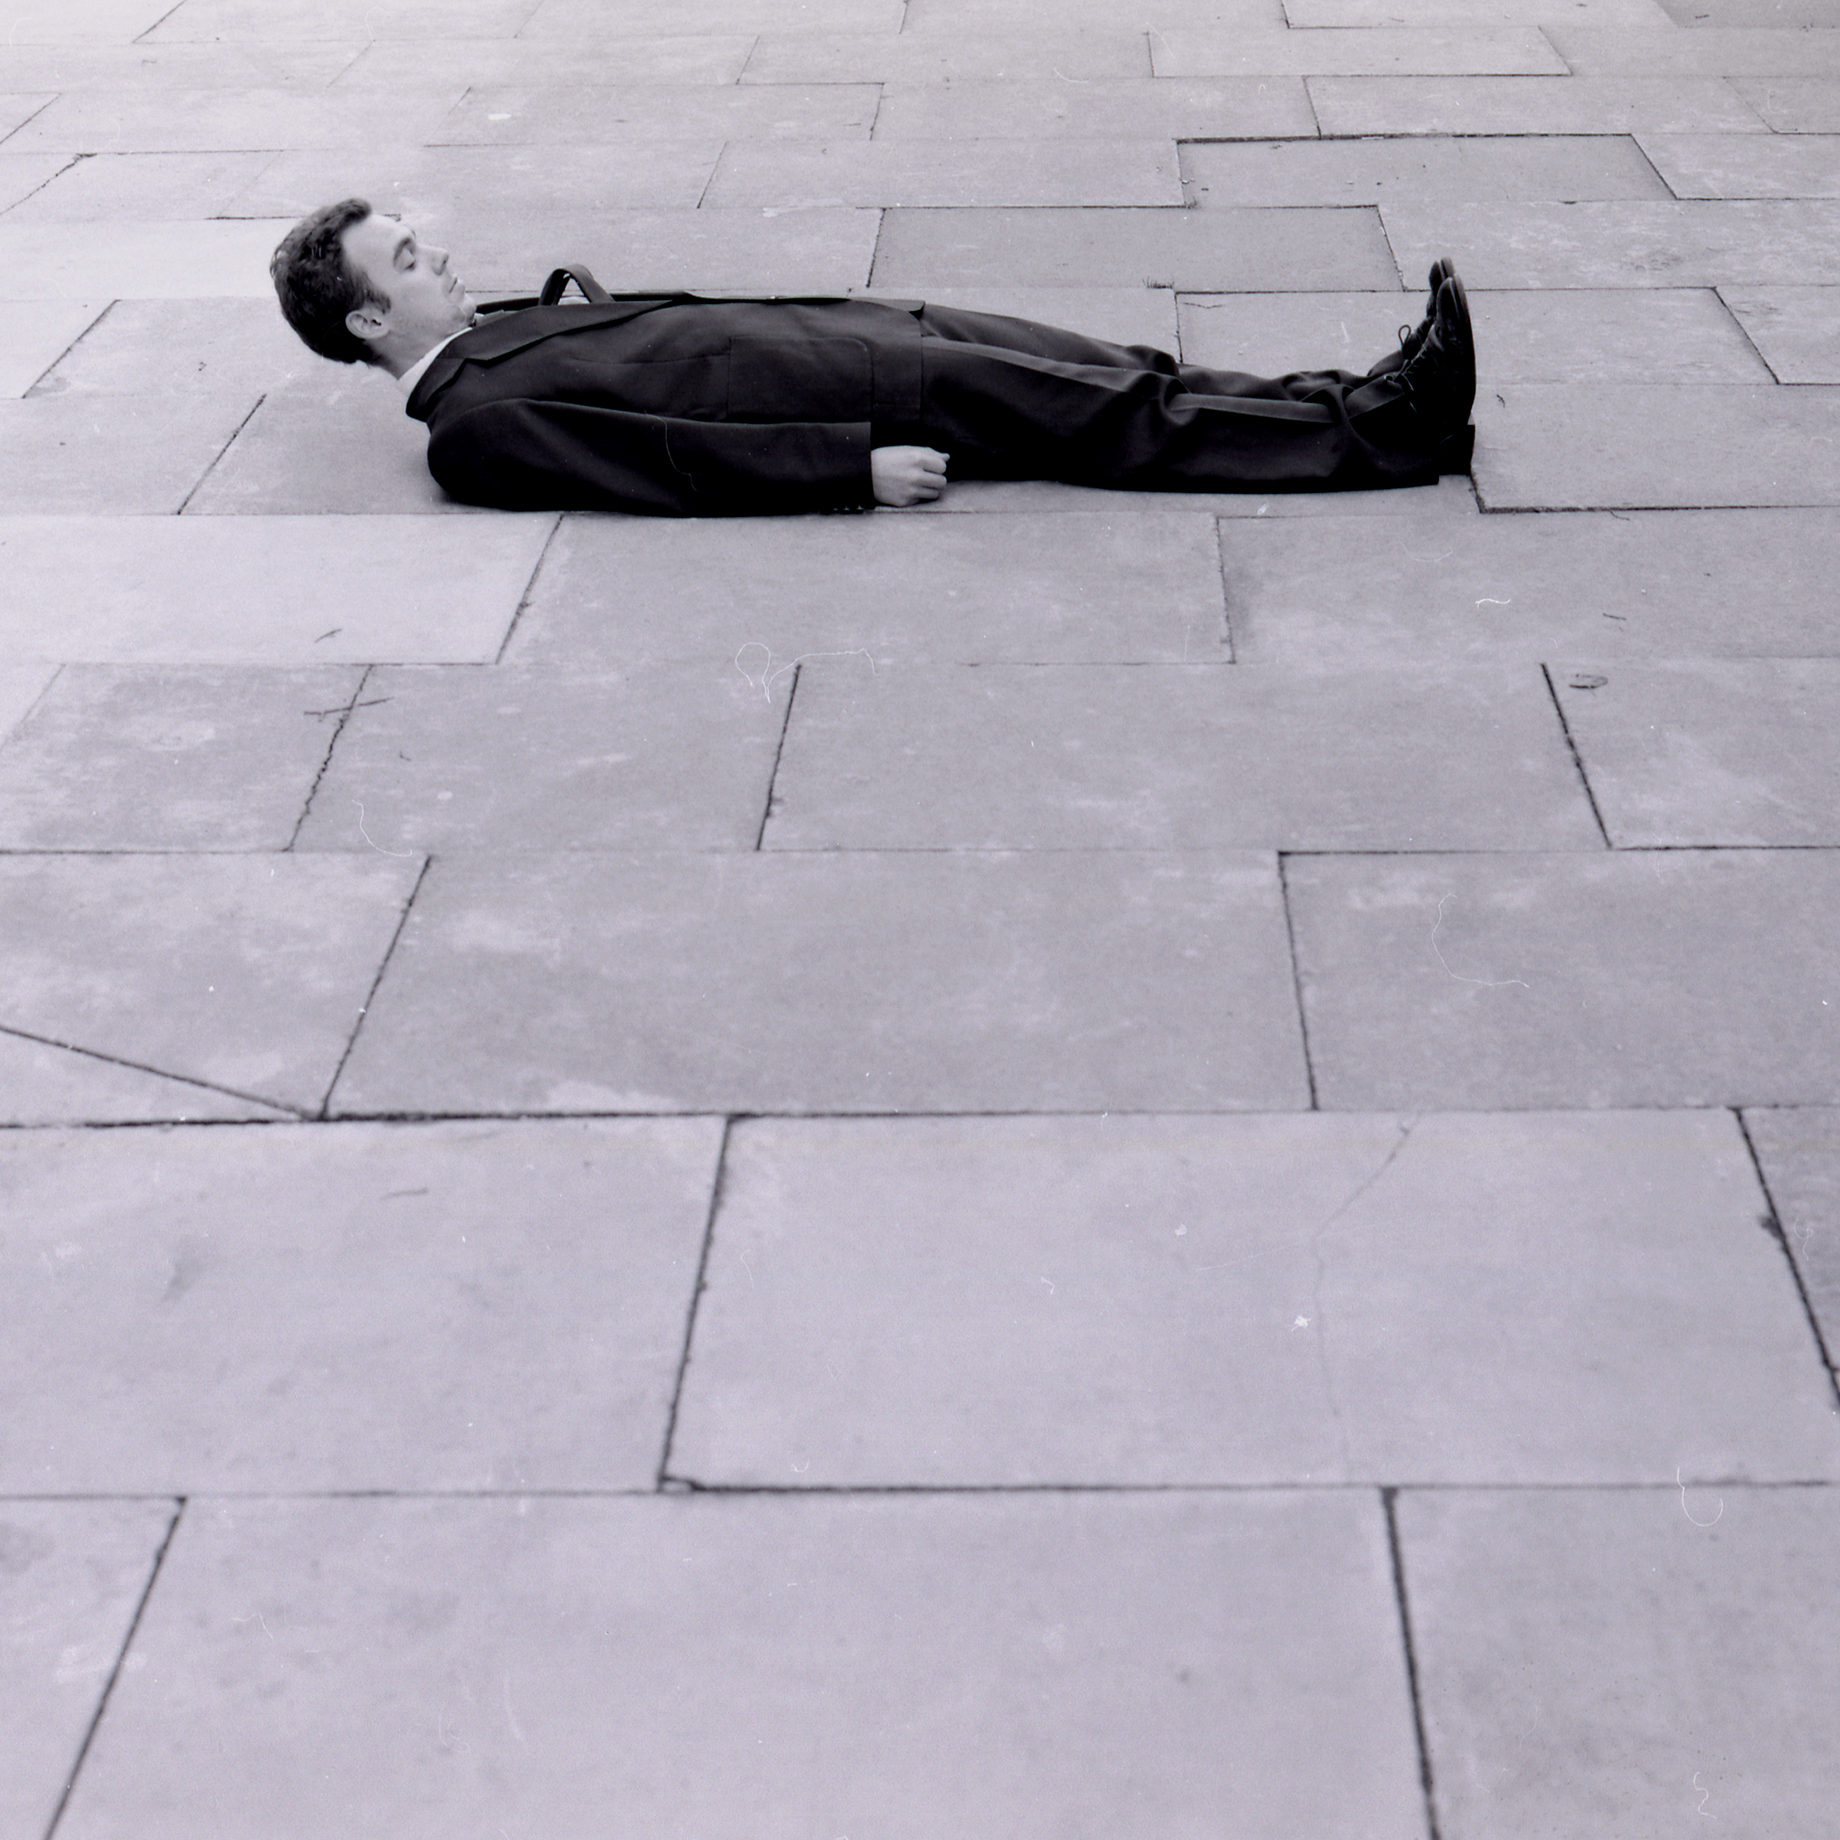 Alexander Costello, If I lie on the ground there is less chance of me falling over, Photograph of performance, 2001, Image credit Kathryn Wagland